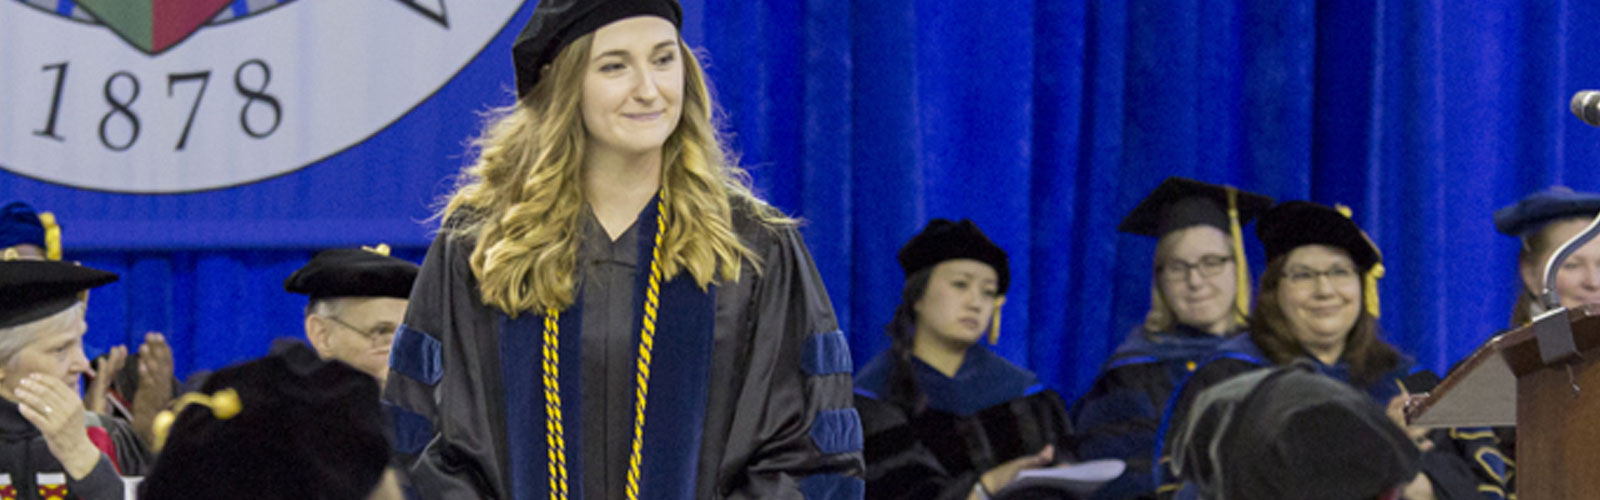 commencement ceremonyThe School of Pharmacy and Health Professions